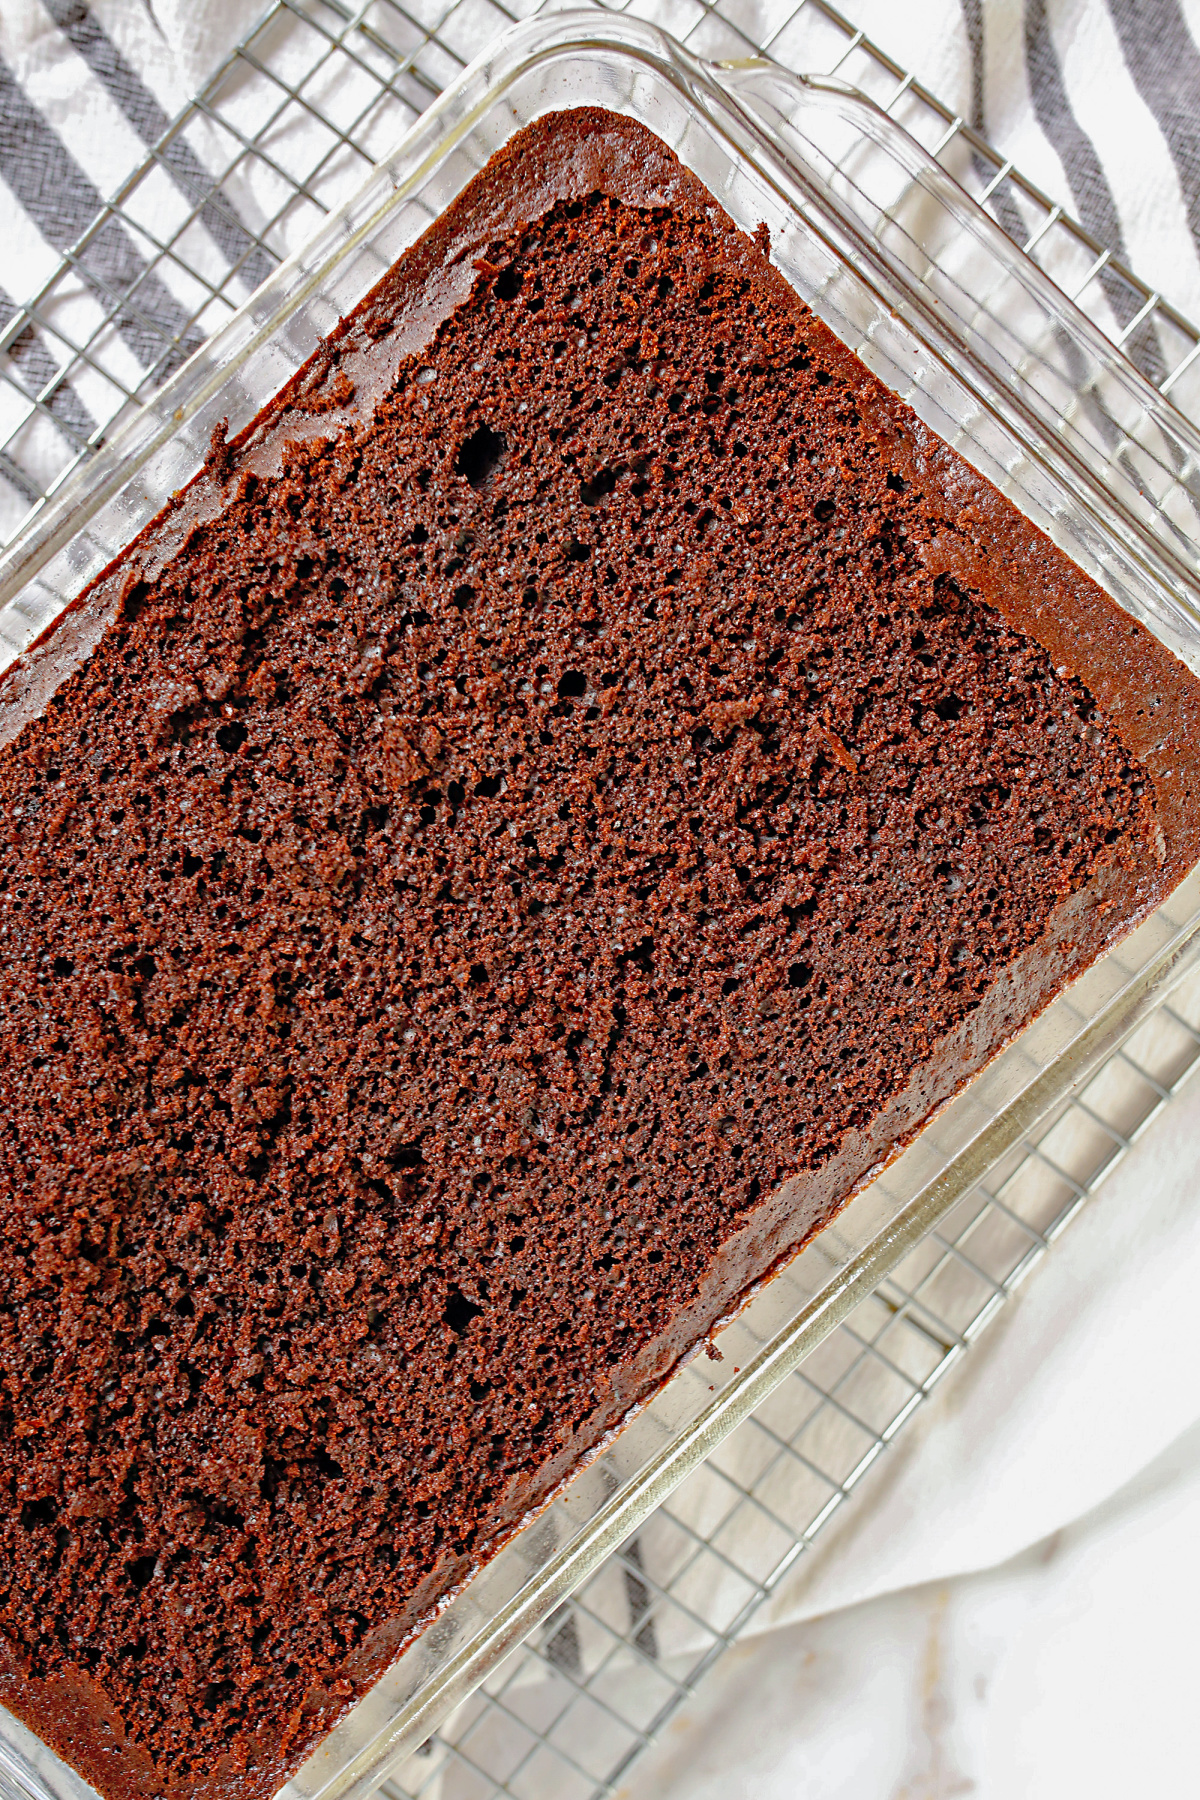 chocolate cake with the top scraped off